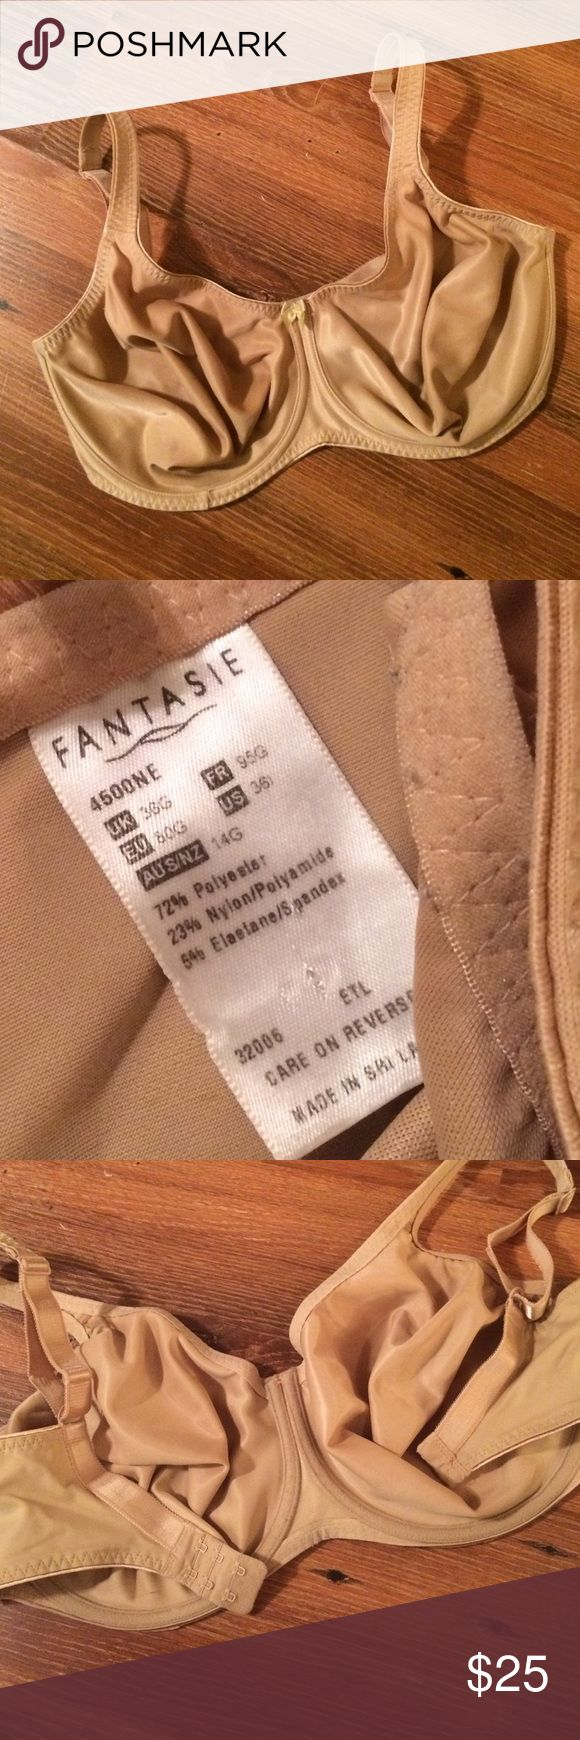 Fantasie Bra Very gently worn Fantasie bra nude. US 36I / UK 36G.  Pretty much like new.  Was purchased at Nordstrom Fantasie Intimates & Sleepwear Bras